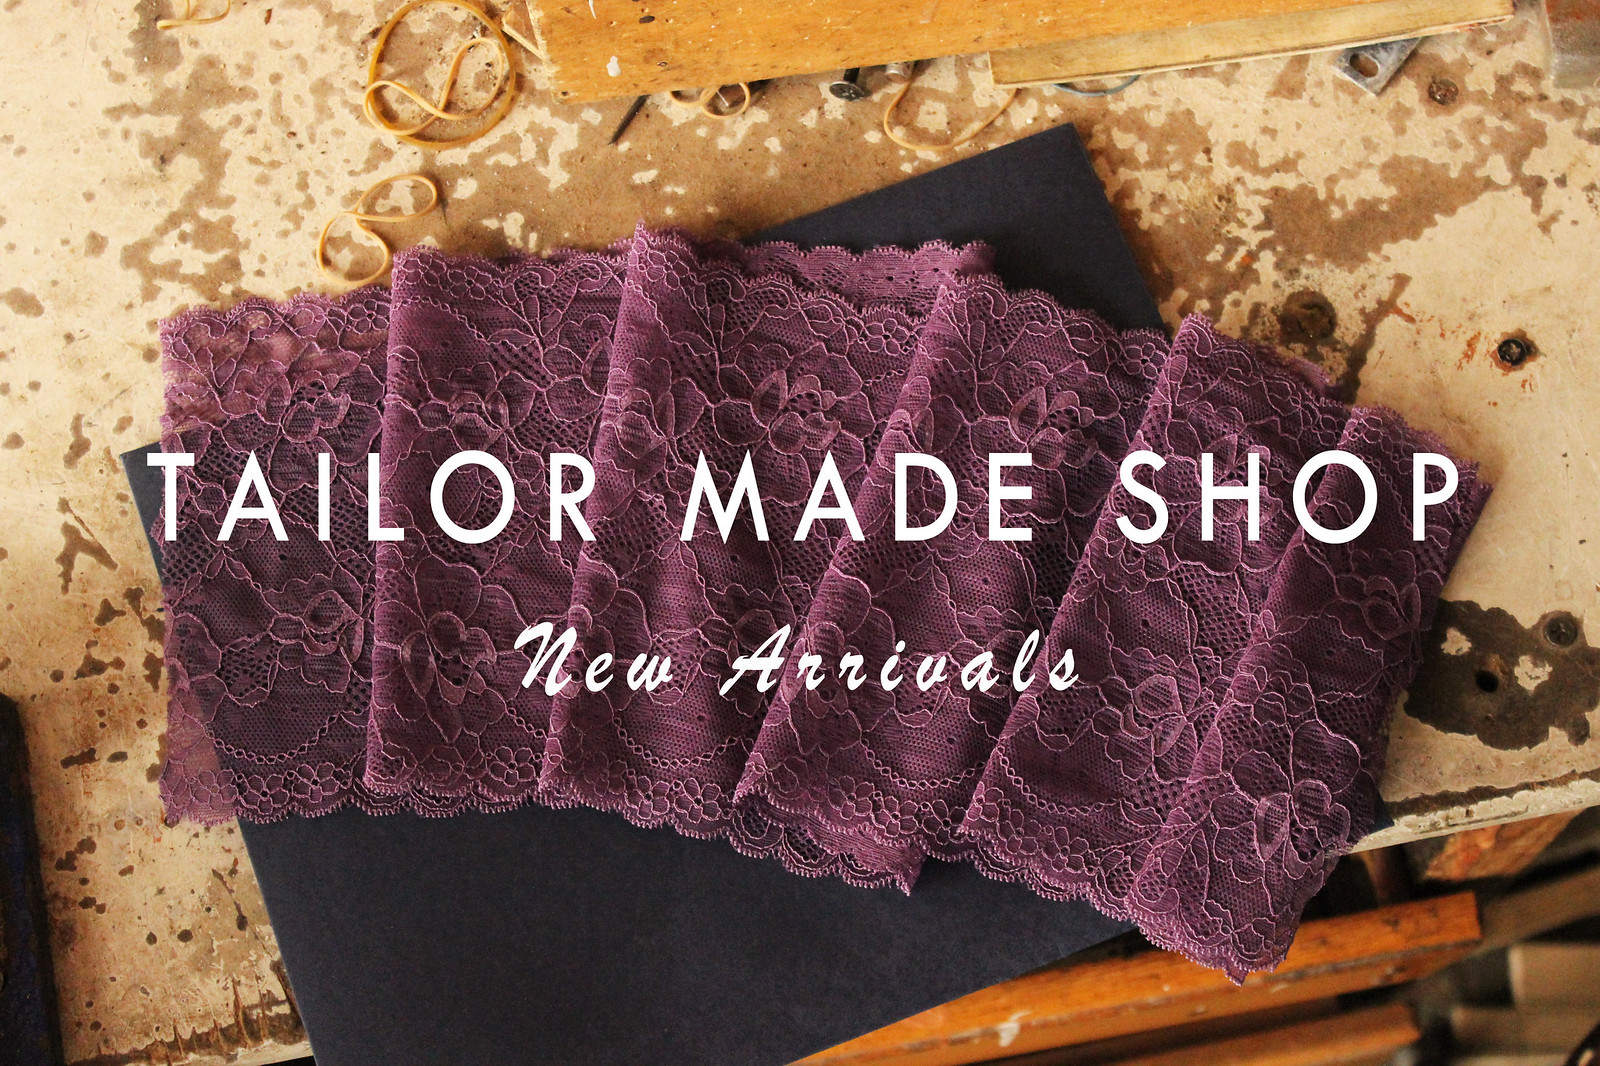 Tailor Made Shop New Arrivals